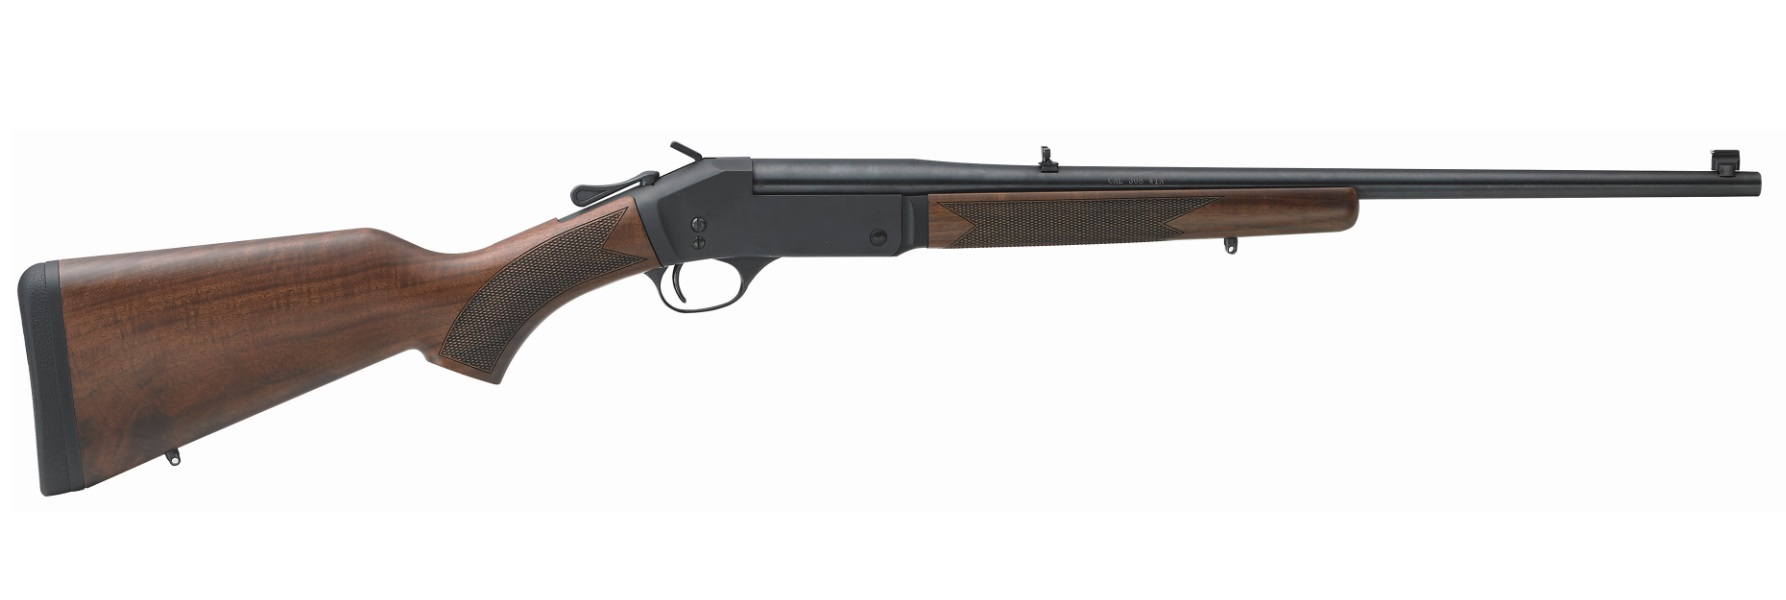 Henry Repeating Arms HENRY SINGLESHOT RIFLE 243 WIN